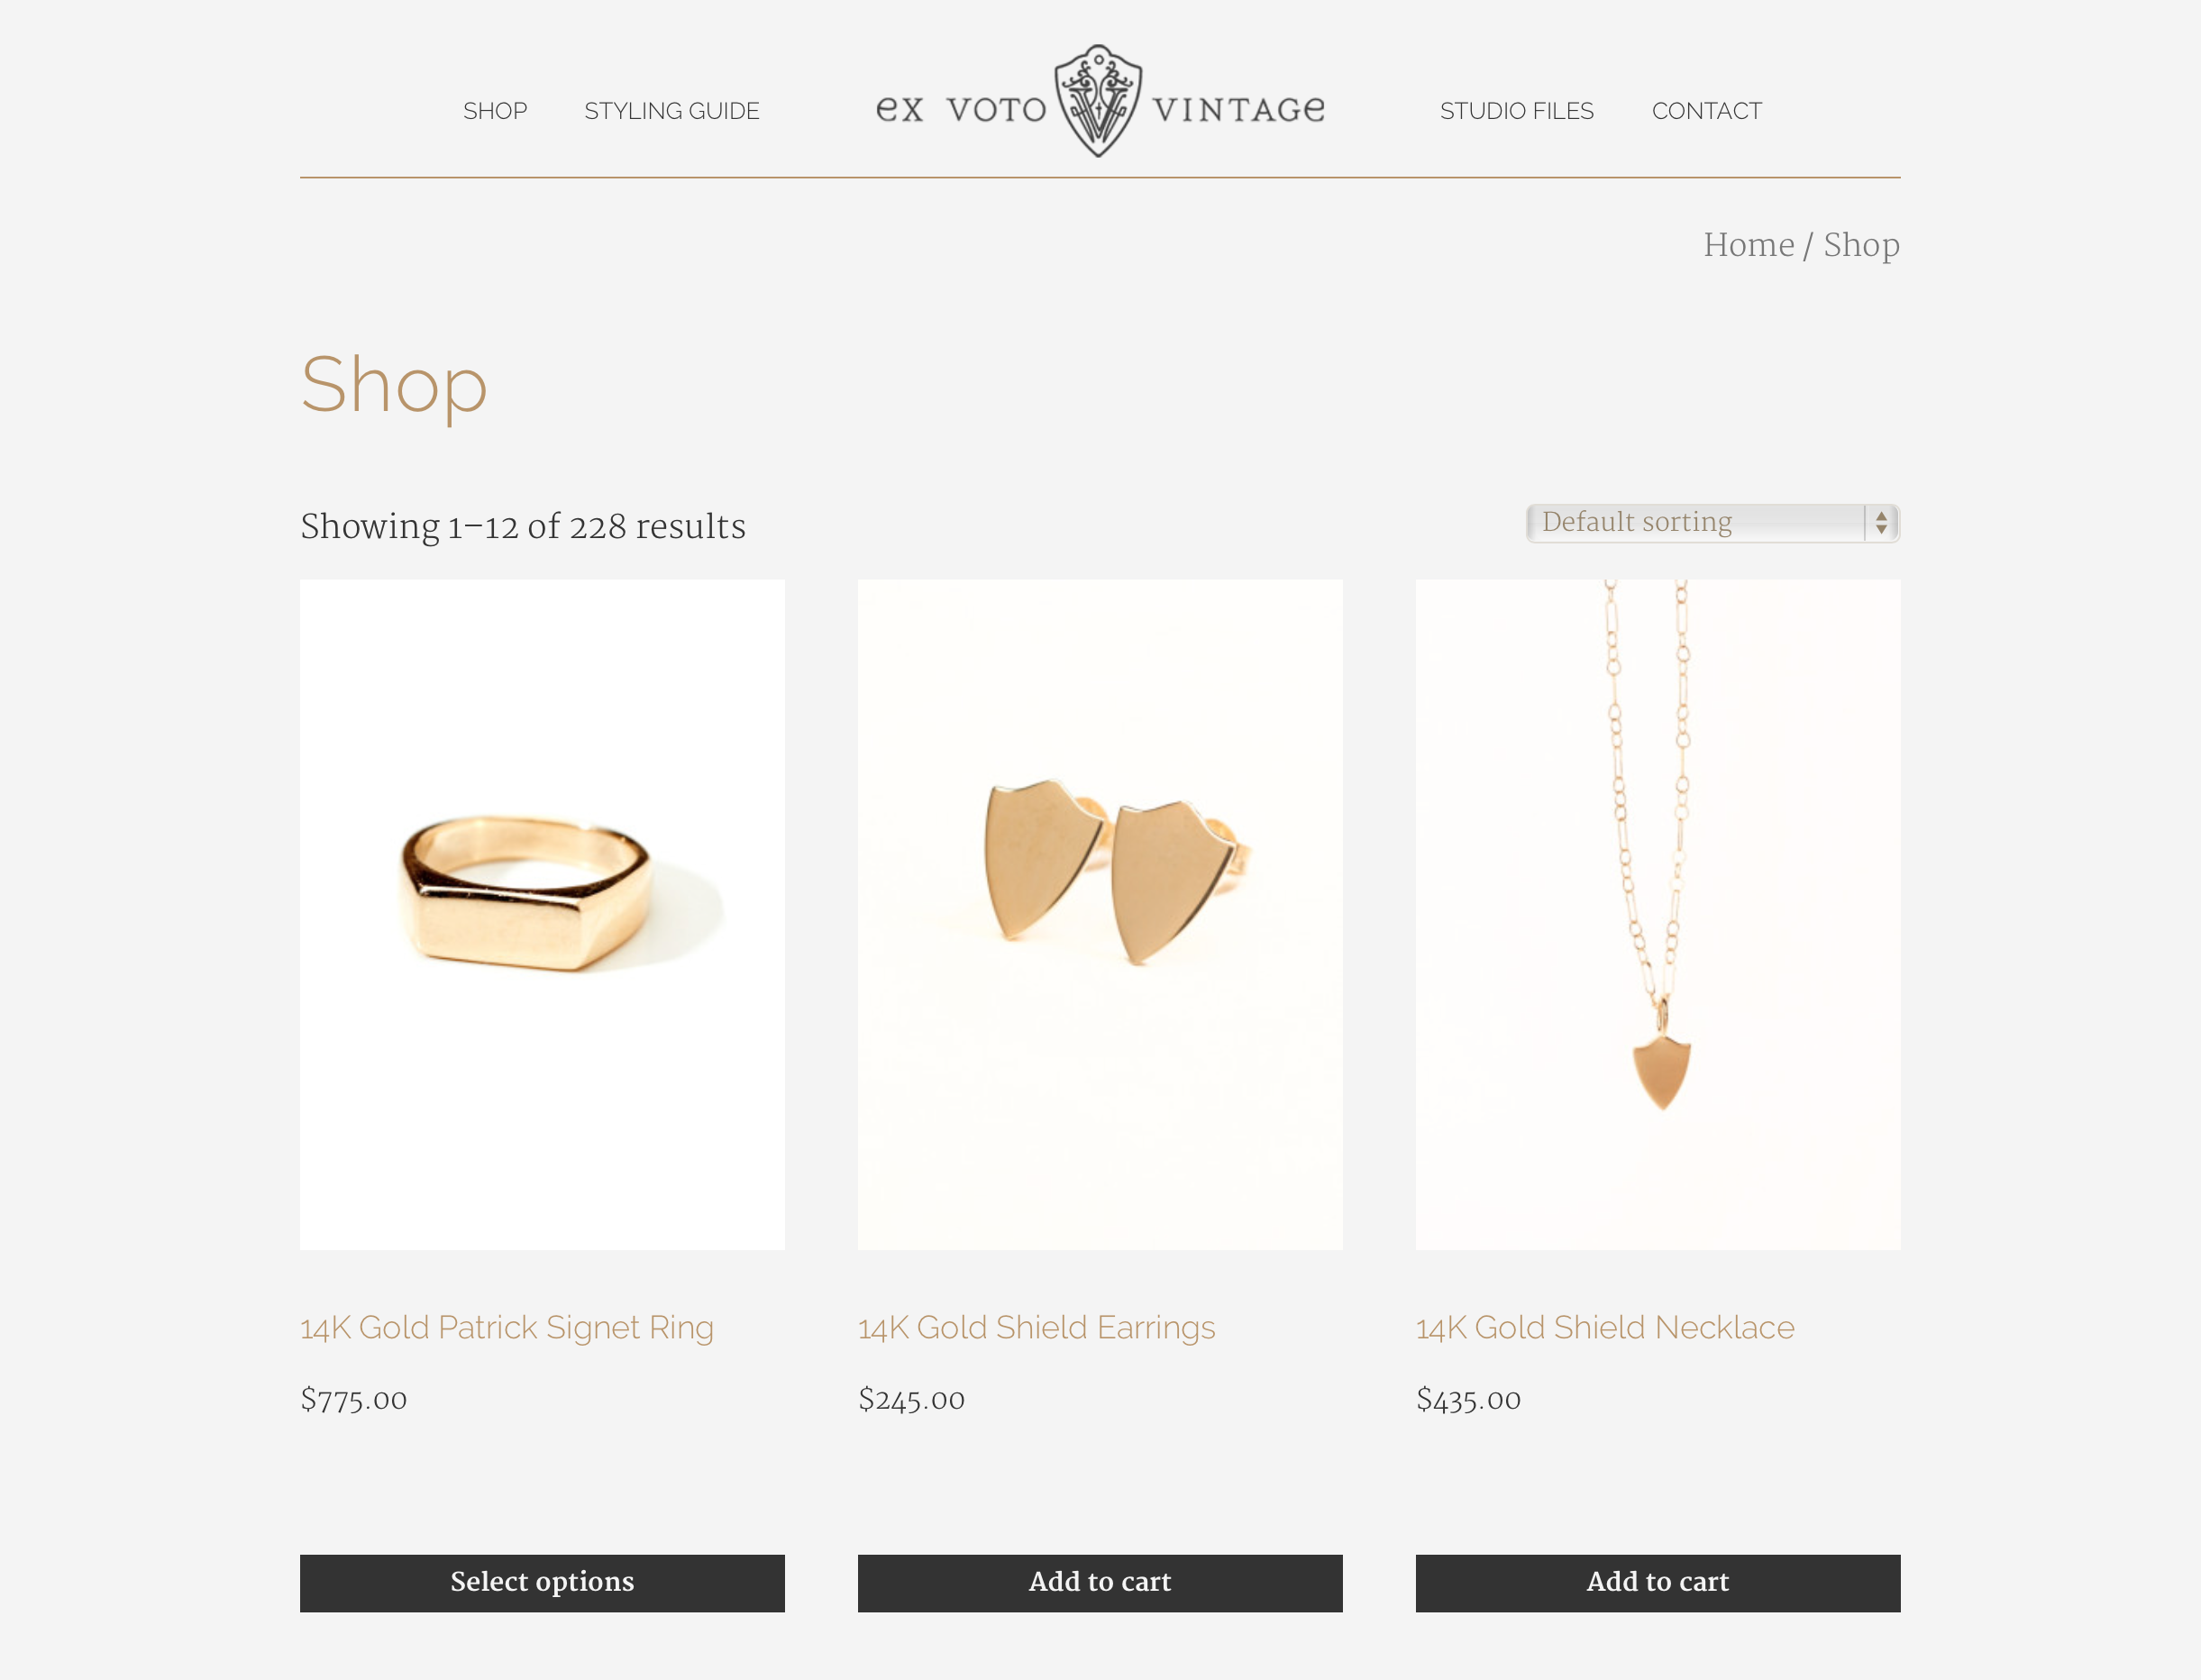 Website_shopping_4.3.15.png